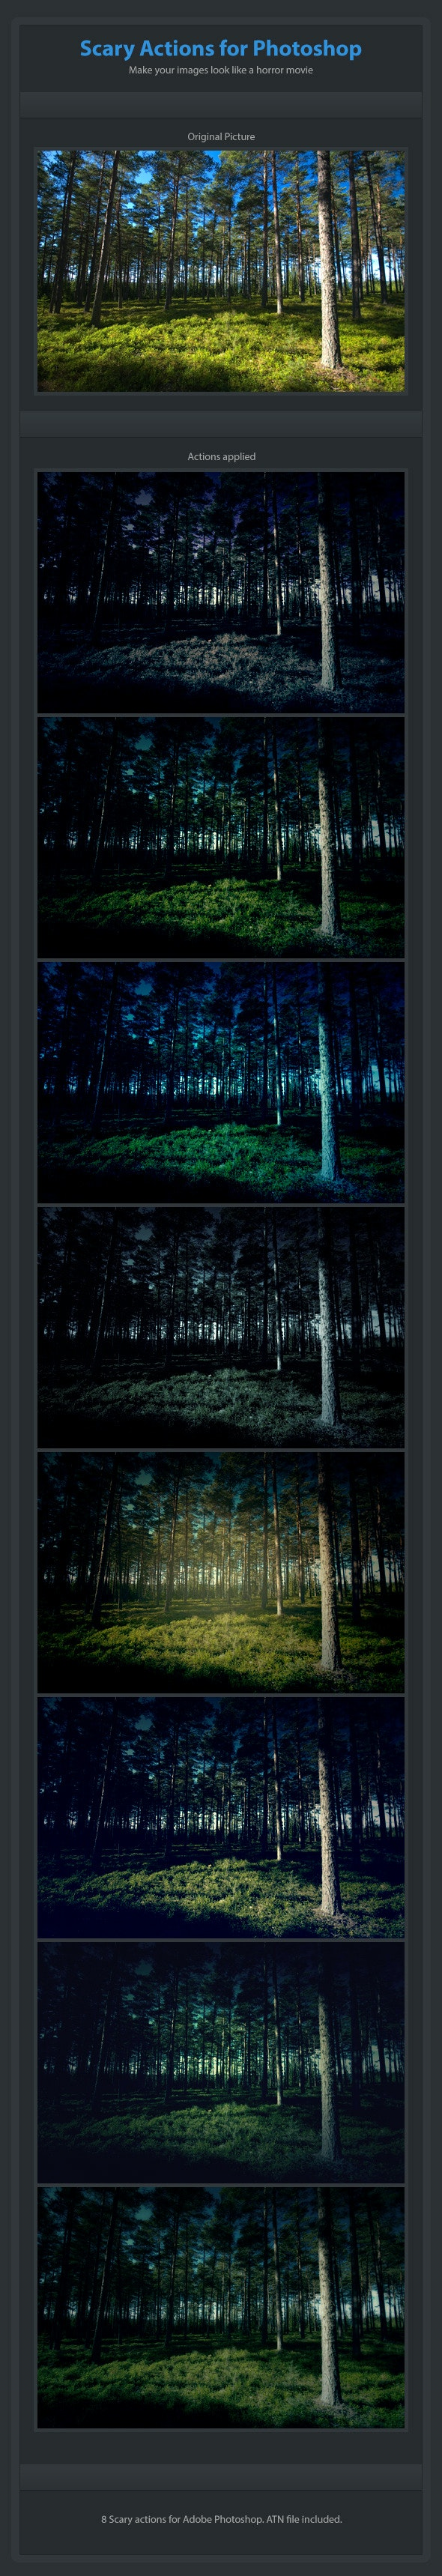 8 Scary Actions for Adobe Photoshop - Photo Effects Actions